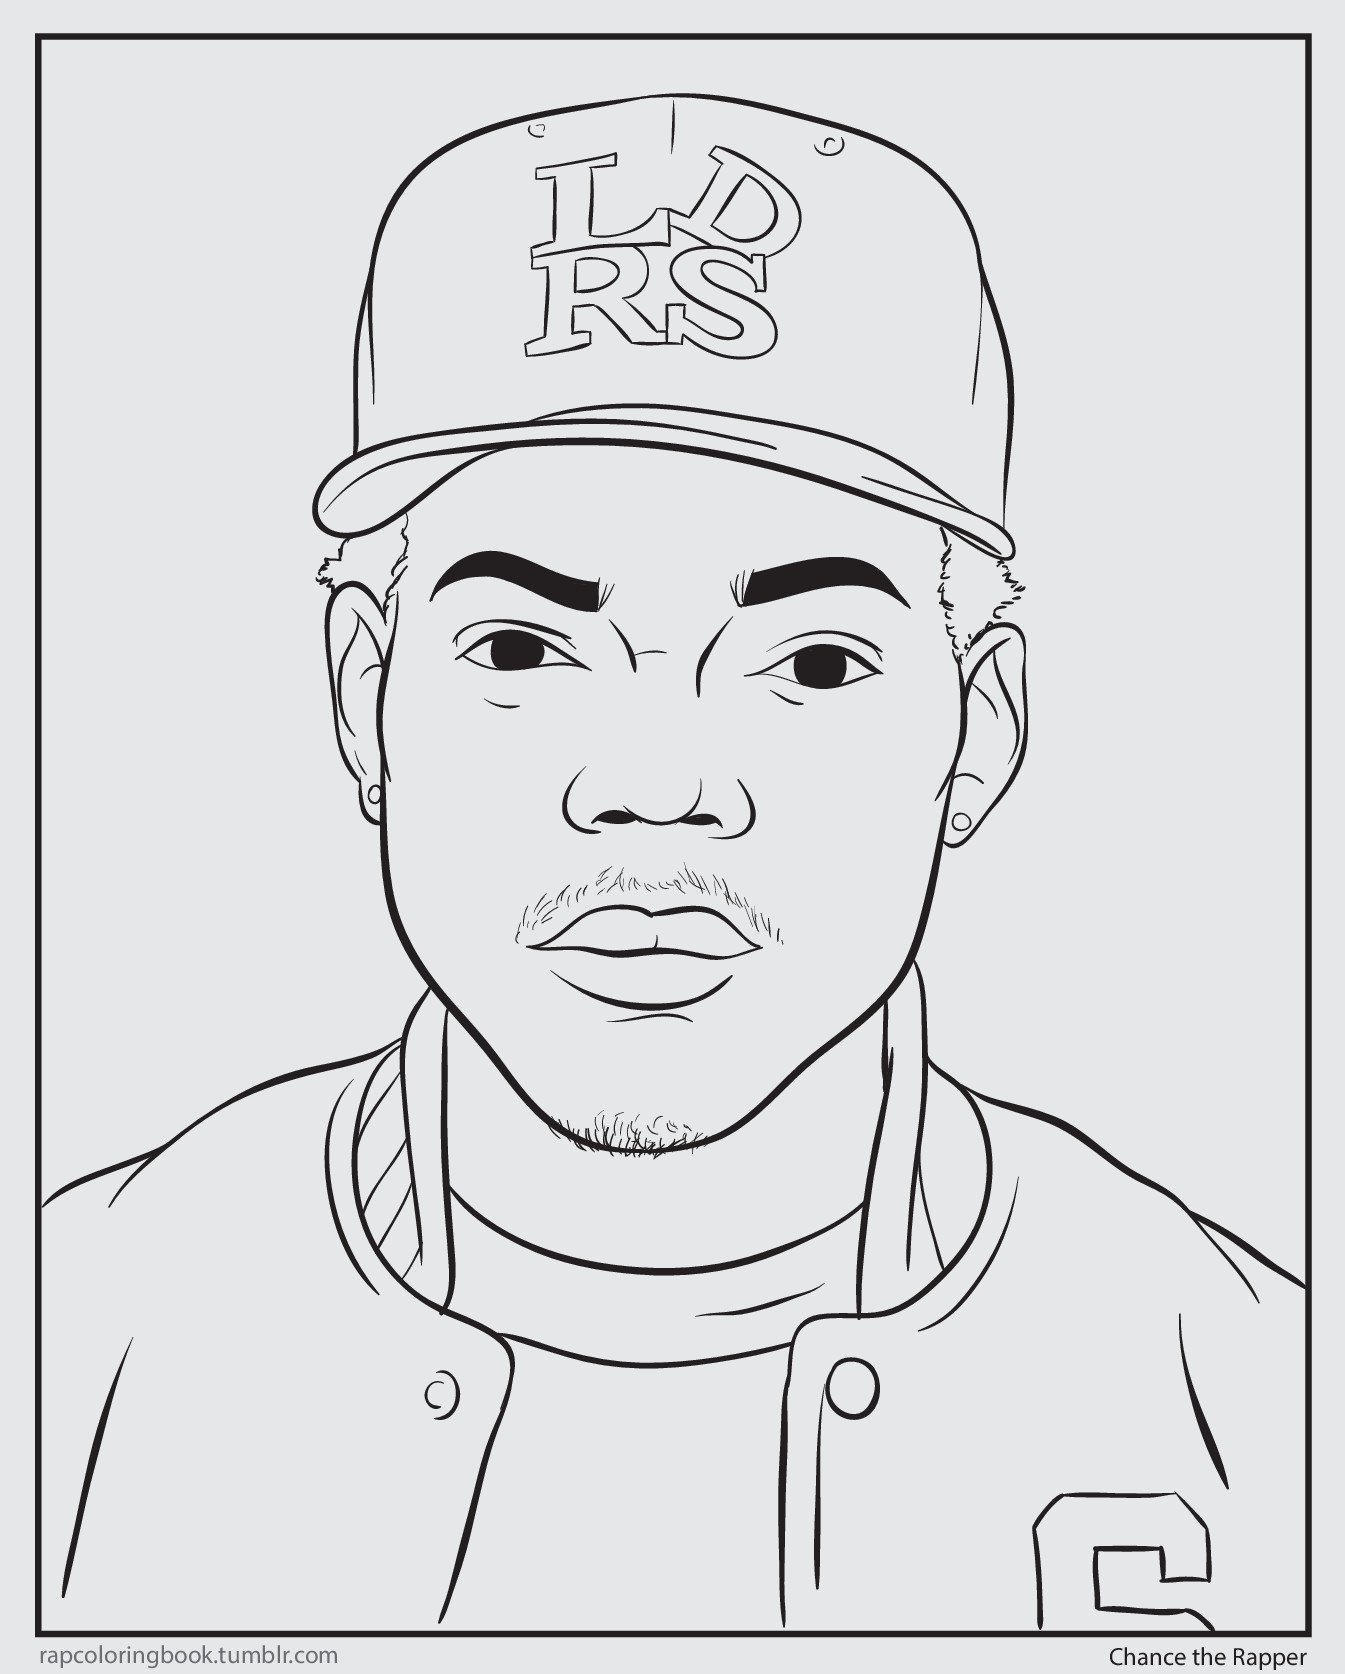 Coloring book download link chance the rapper -  Book Shea Serrano On Twitter I Made An Actual Chance The Rapper Coloring Page And You Can